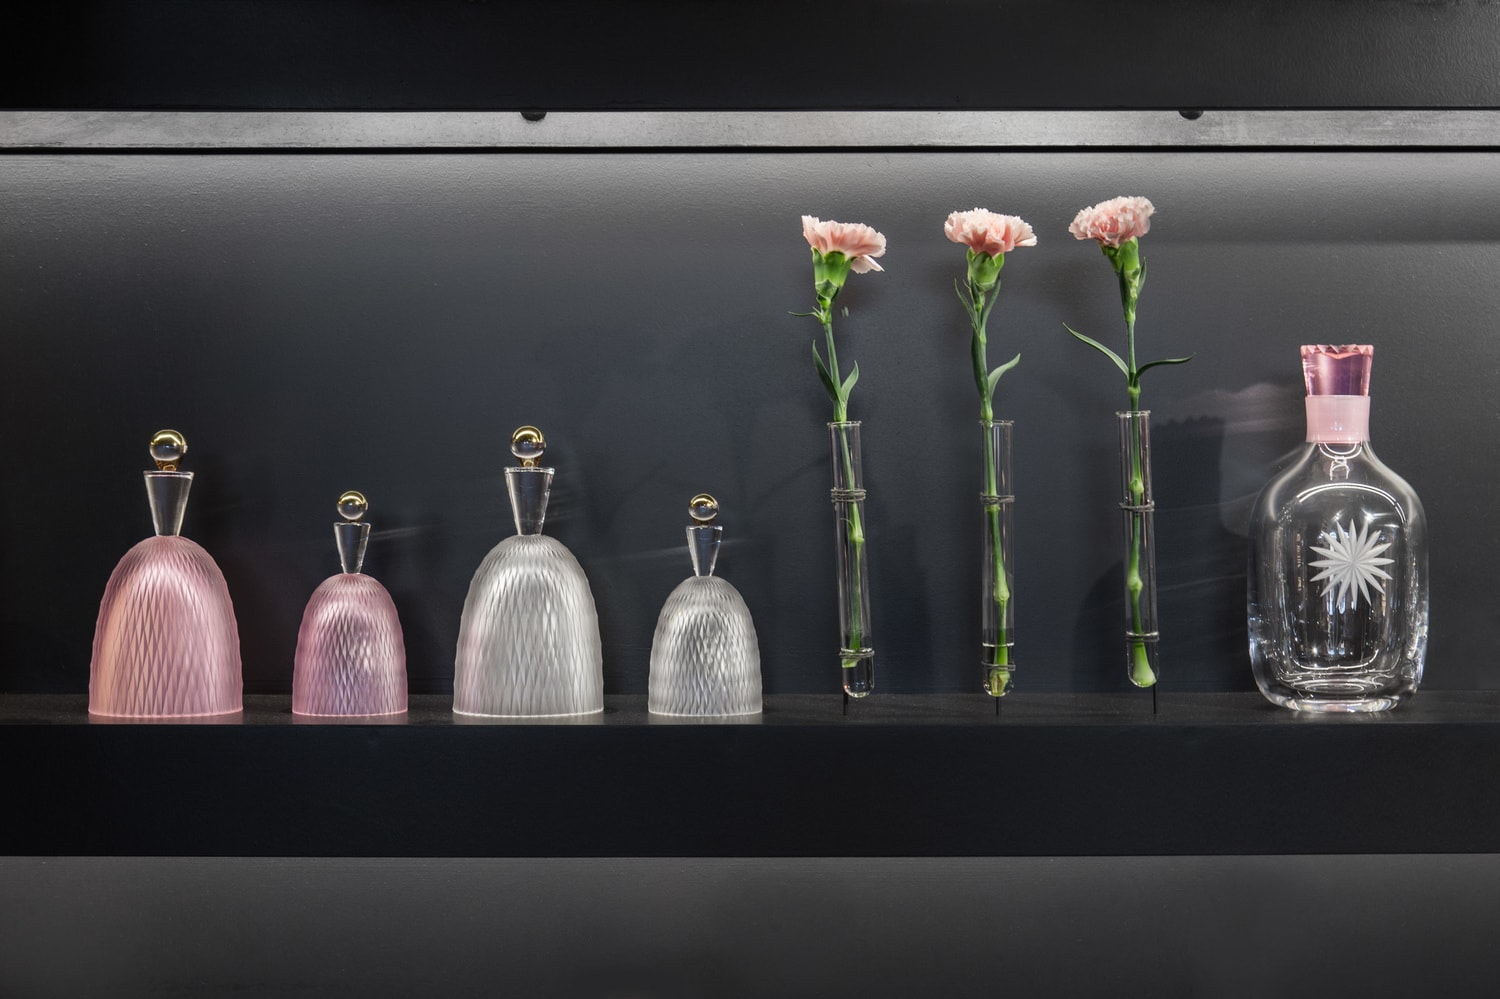 The exhibition stand forRückl Crystal at Prague International Design Festival, DesignBlok 2017. The first shot, the first presentation of the new, the re-branded Rückl. The installation is inspired by a traditional Bohemian shooting range.Rücklis the Bohemian glass factory, founded in 1846 in Nižbor, specialized on glassware. Designed by Jiri Krejcirik in cooperation with Rony Plesl.